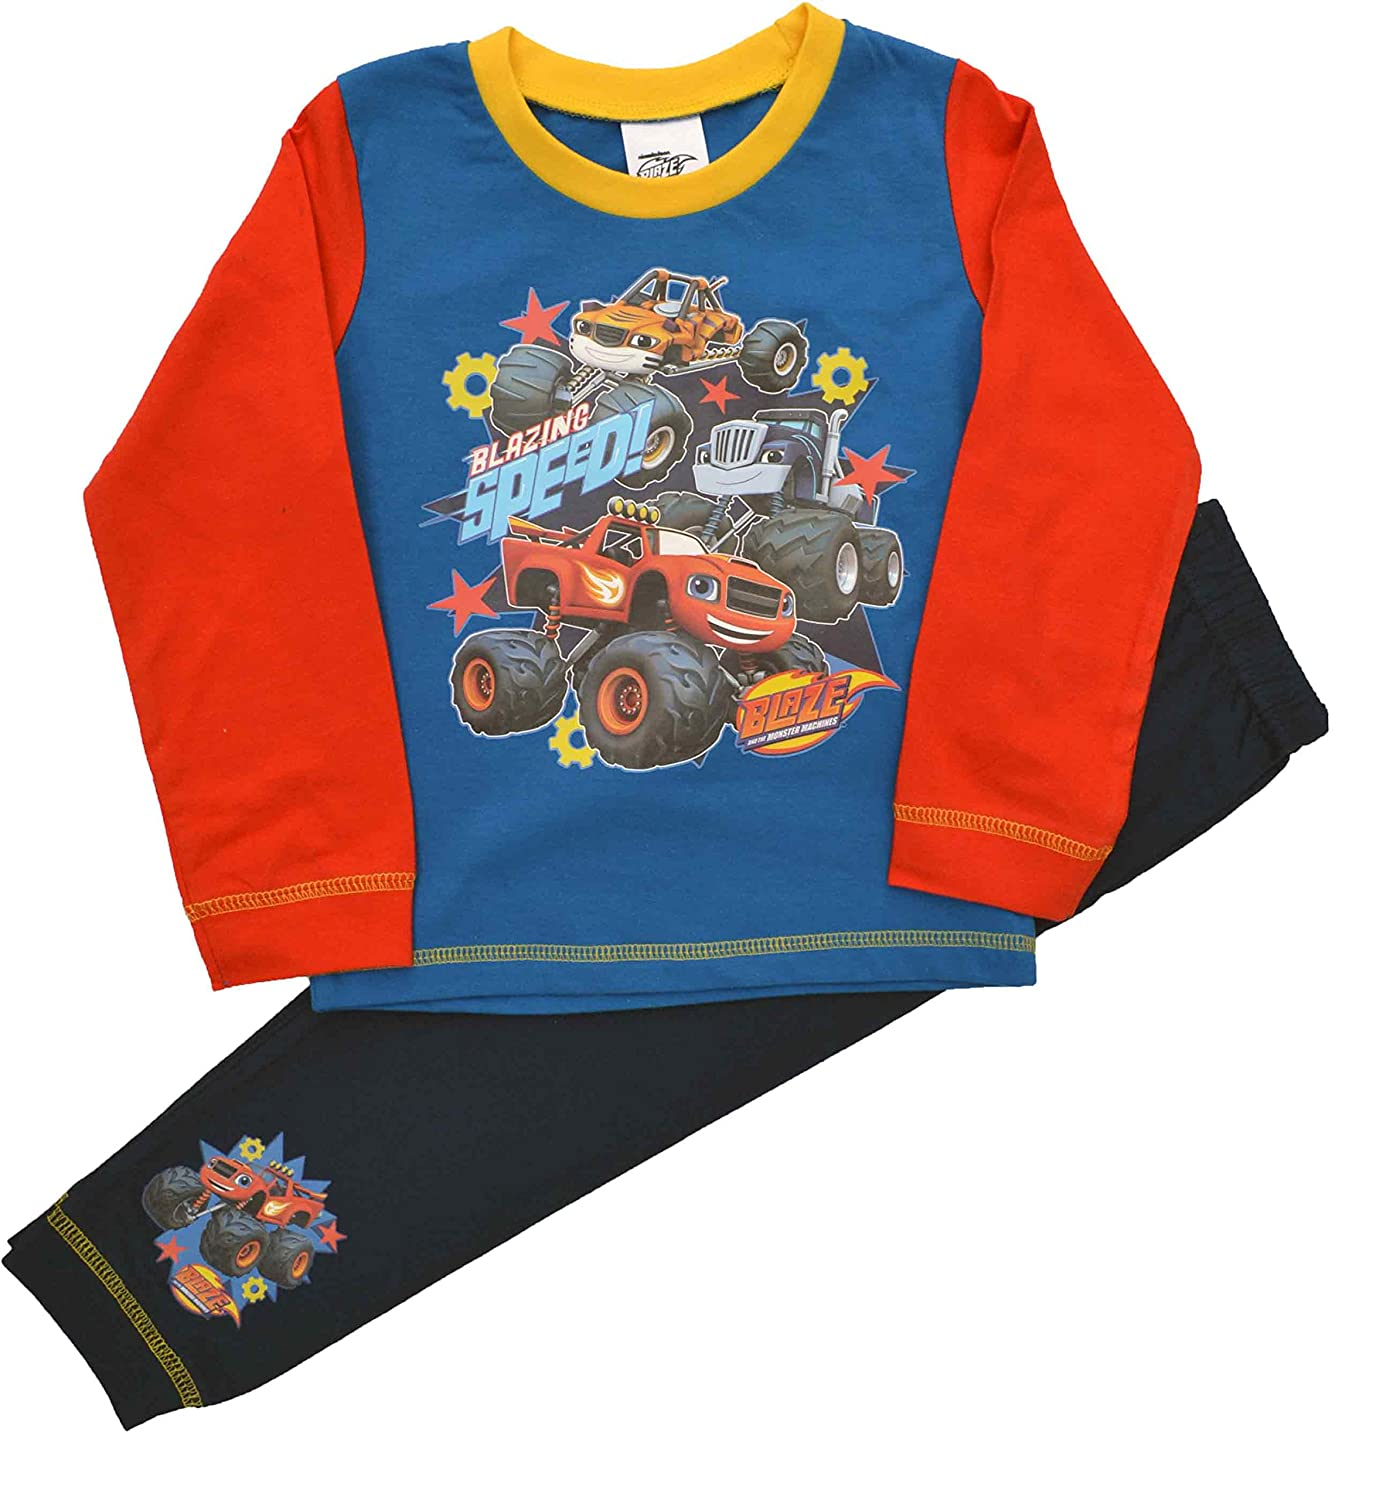 Boys Blaze and The Monster Machines Pyjamas Sizes 18 Months to 5 Years